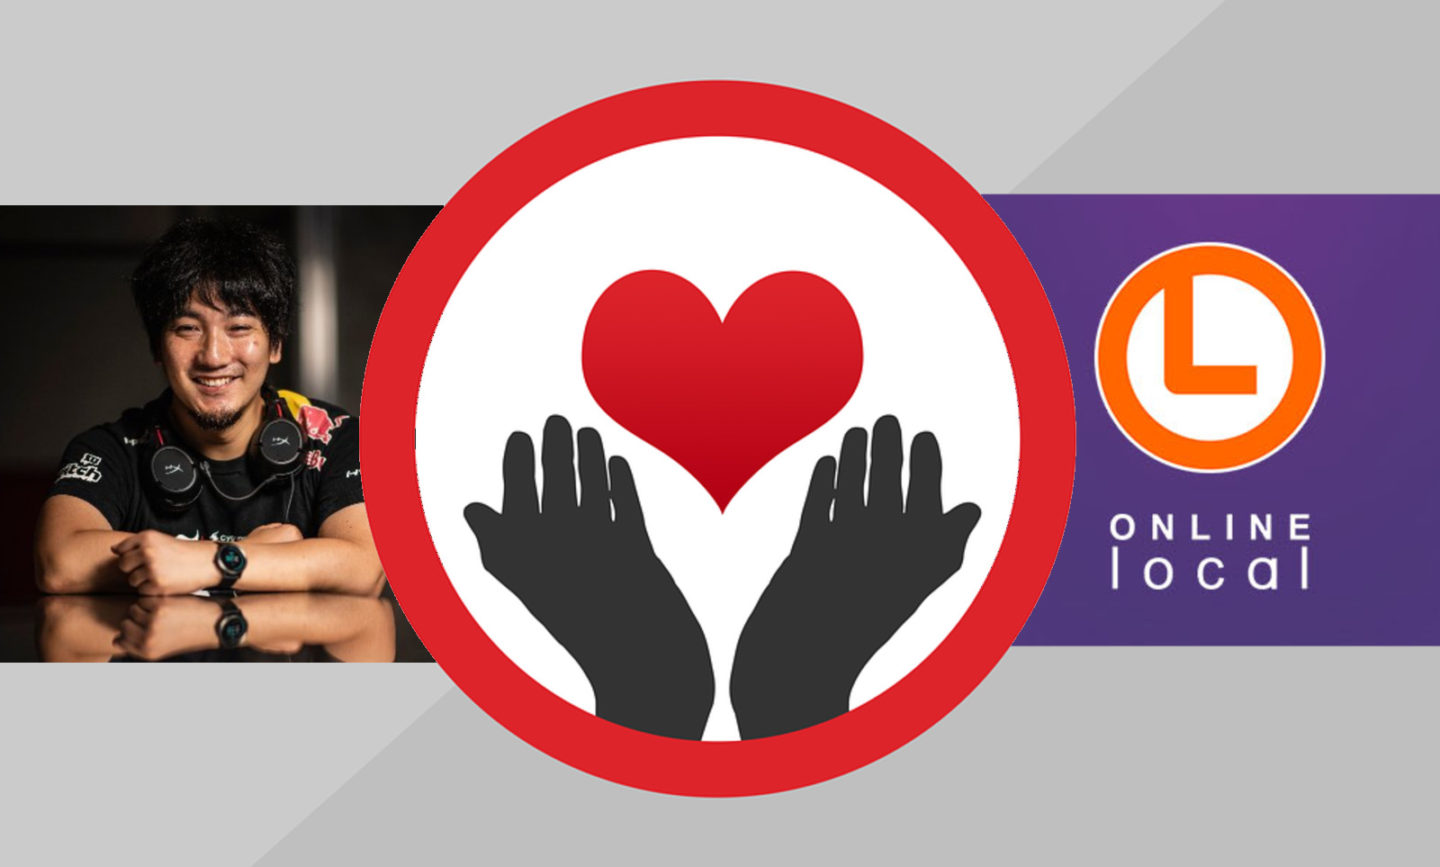 daigo, the logo for the online local, and a pair of hands holding out a heart